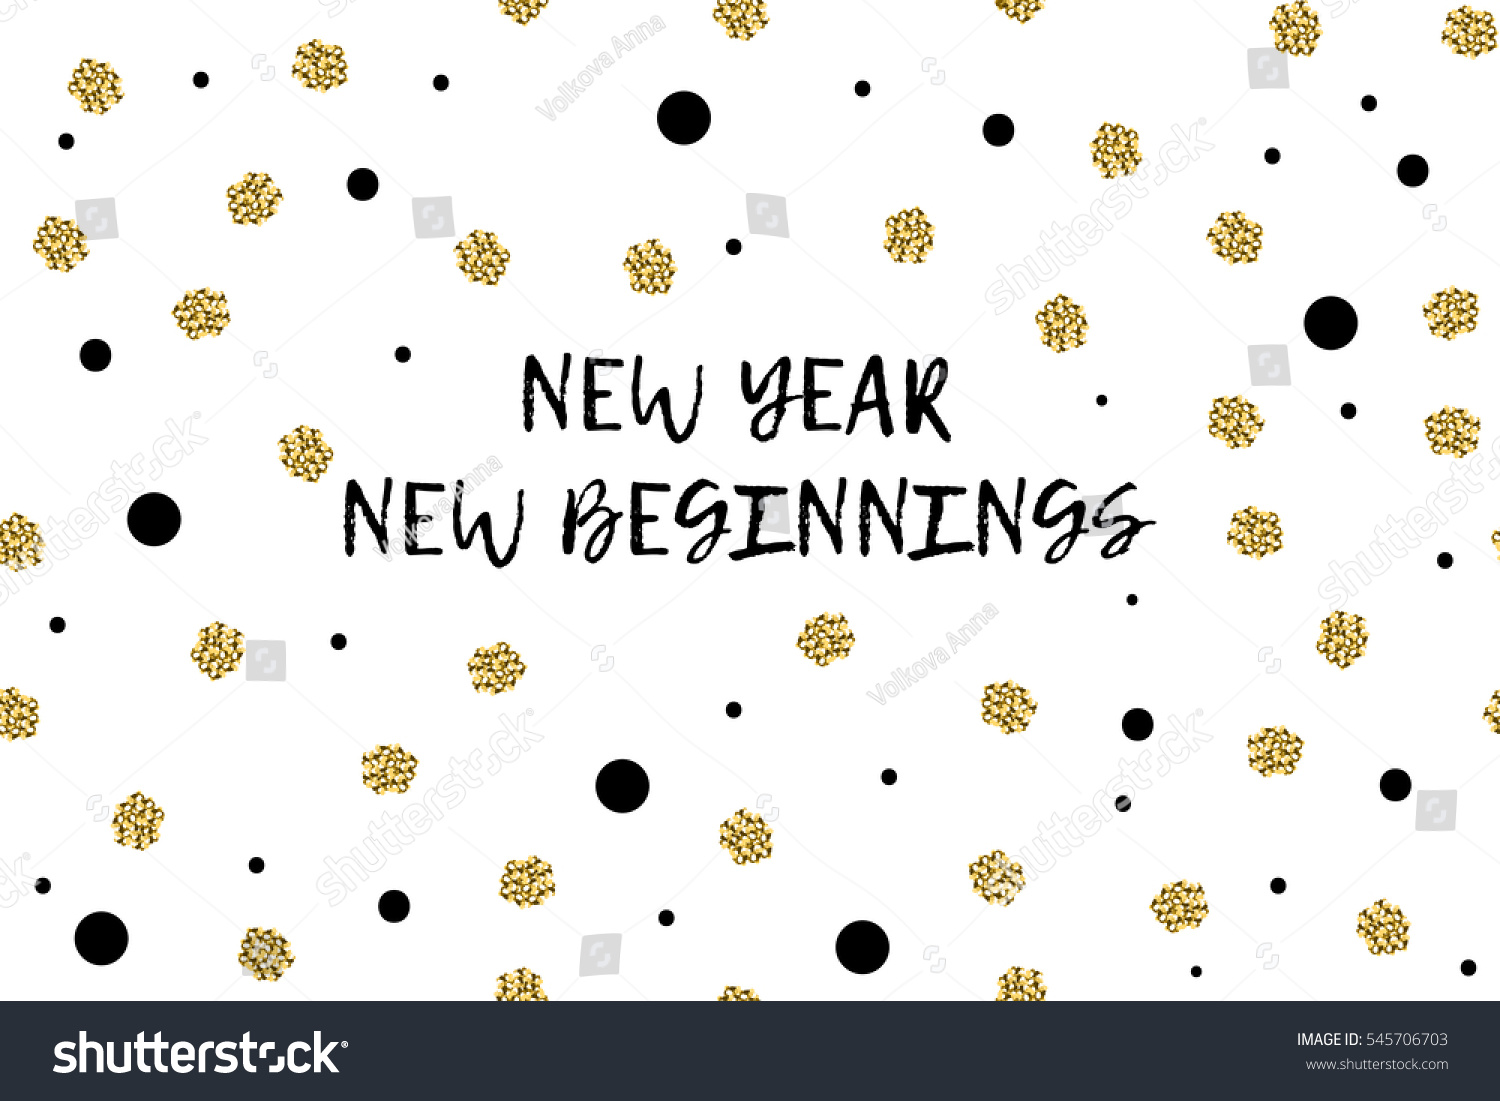 New Year Greeting Card Text Black Stock Vector (Royalty Free ...